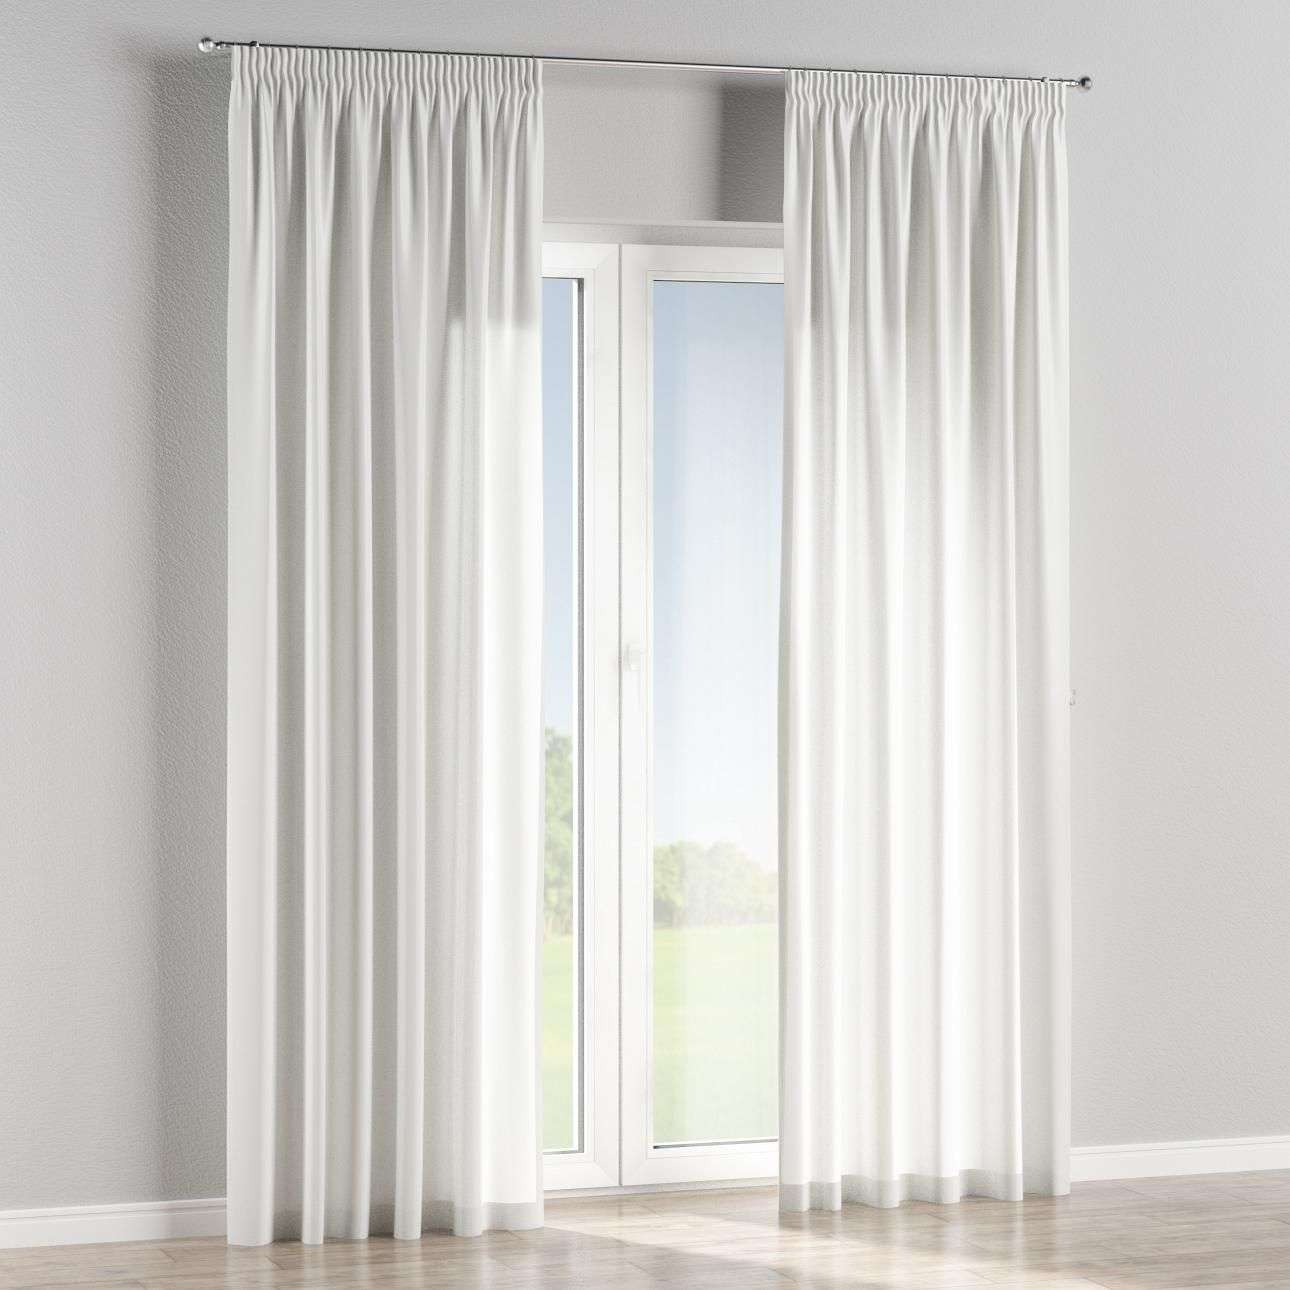 Pencil pleat lined curtains in collection Amelie , fabric: 136-75